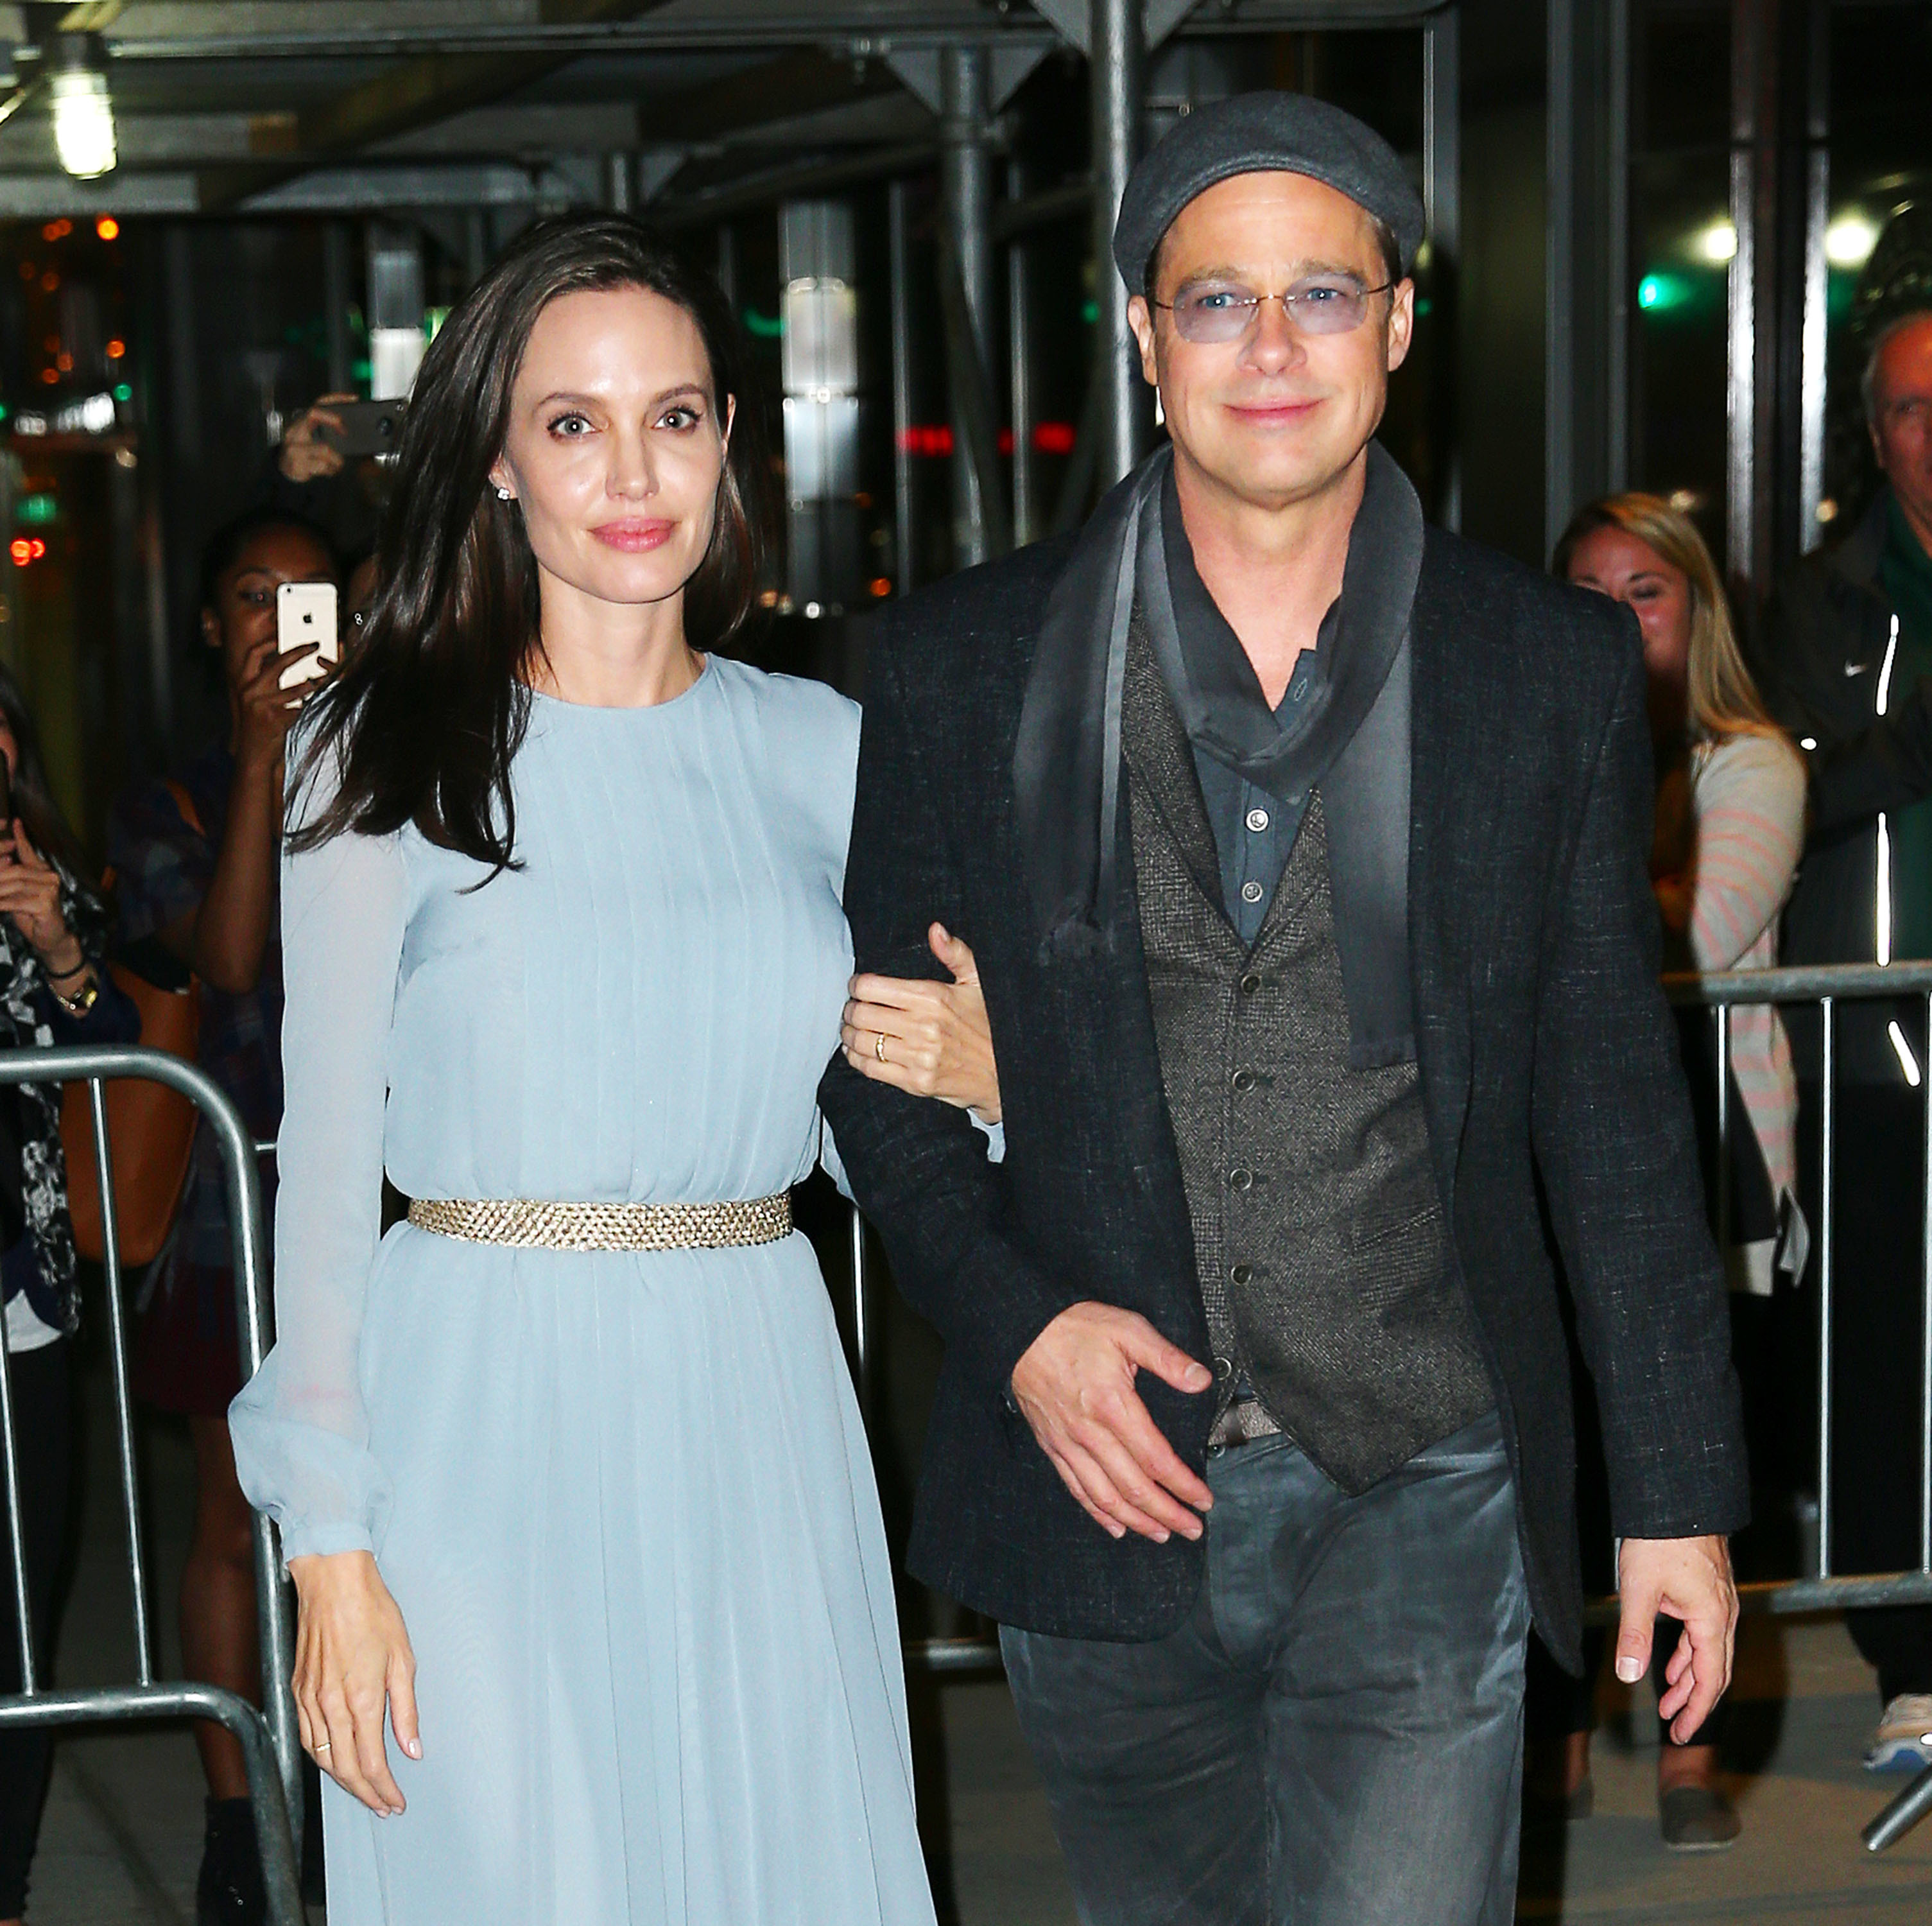 Brad Pitt abuse allegations 'are exaggerated or fabricated': Source